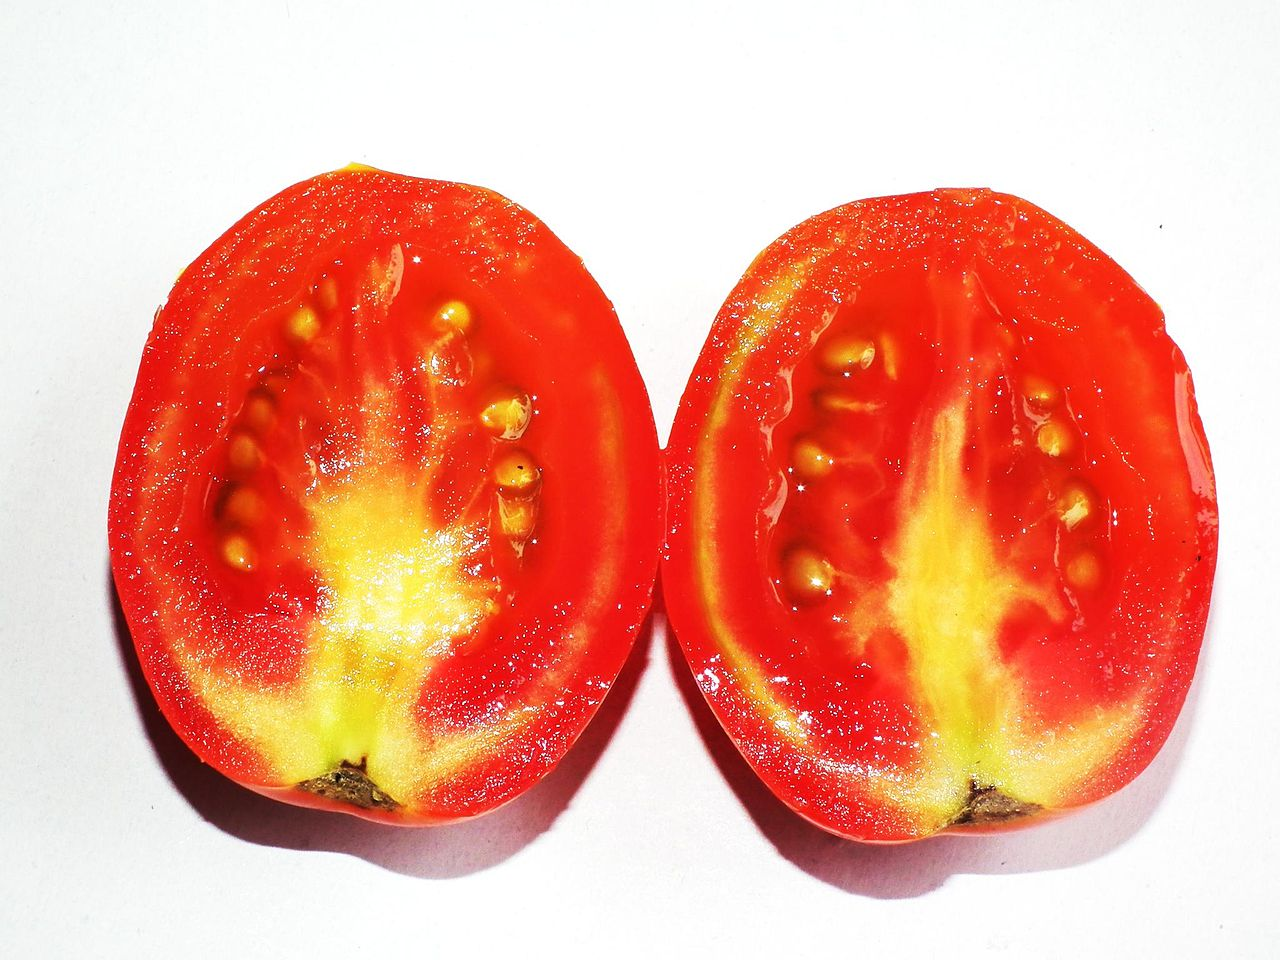 Filetomato Cross Section View Wikimedia Commons Exhaust System Diagram Http Wwwchicagocorvettenet Diagramviewphp